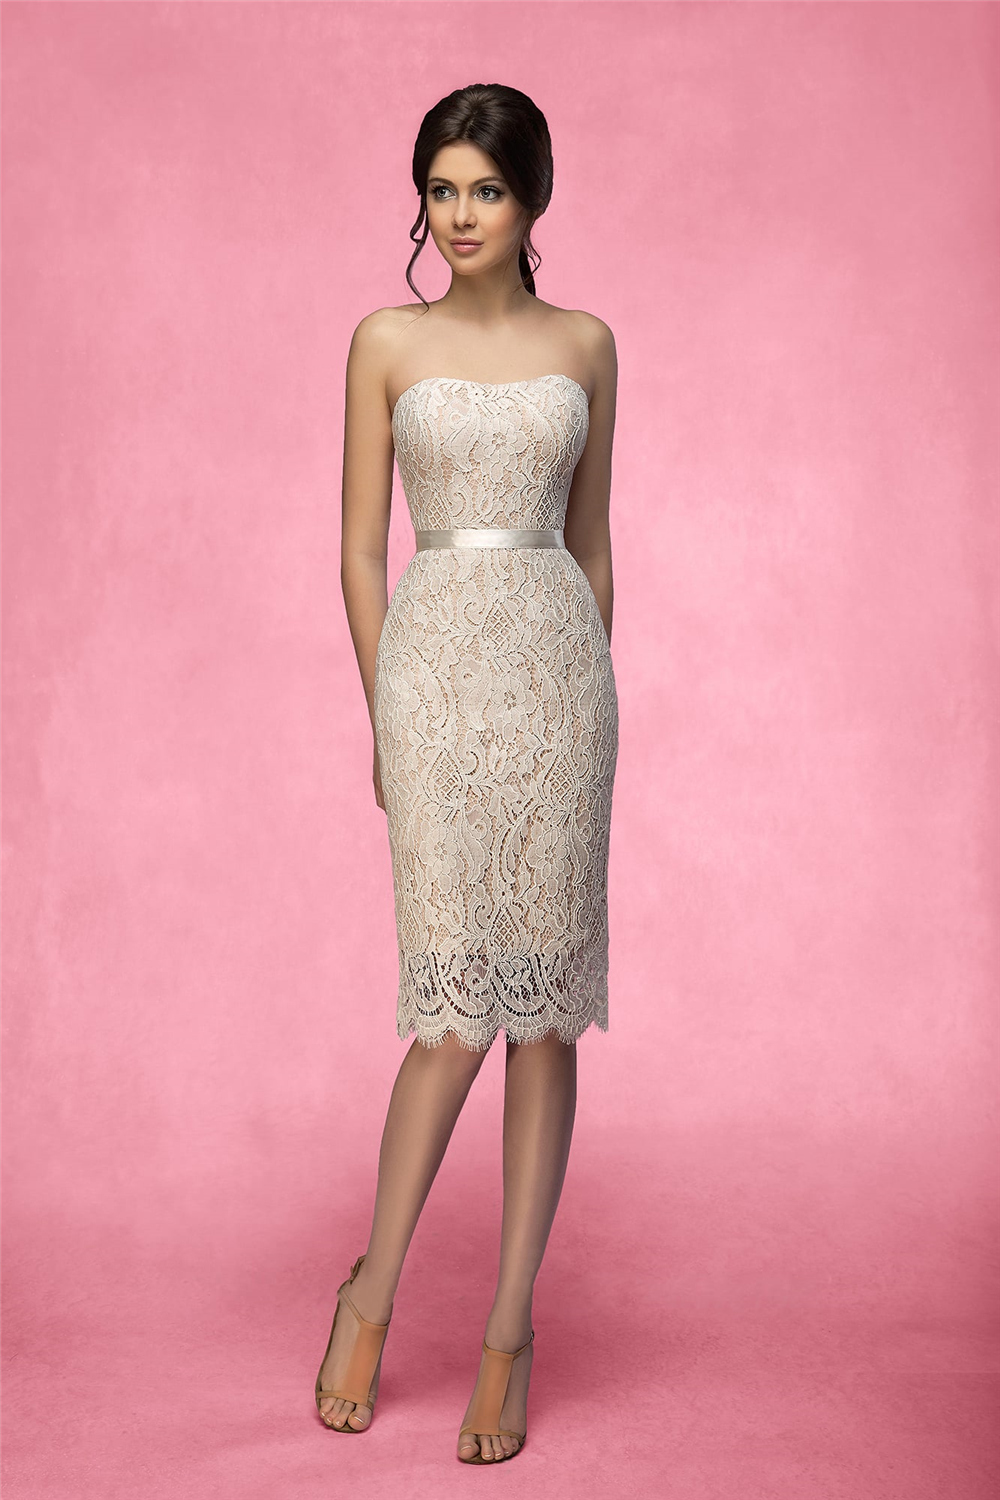 Ivory Strapless Lace Wedding Dresses Strapless Lace Appliques Bridal Gowns Backless Sash Lace-Up Wedding Dress Robe De Mariee